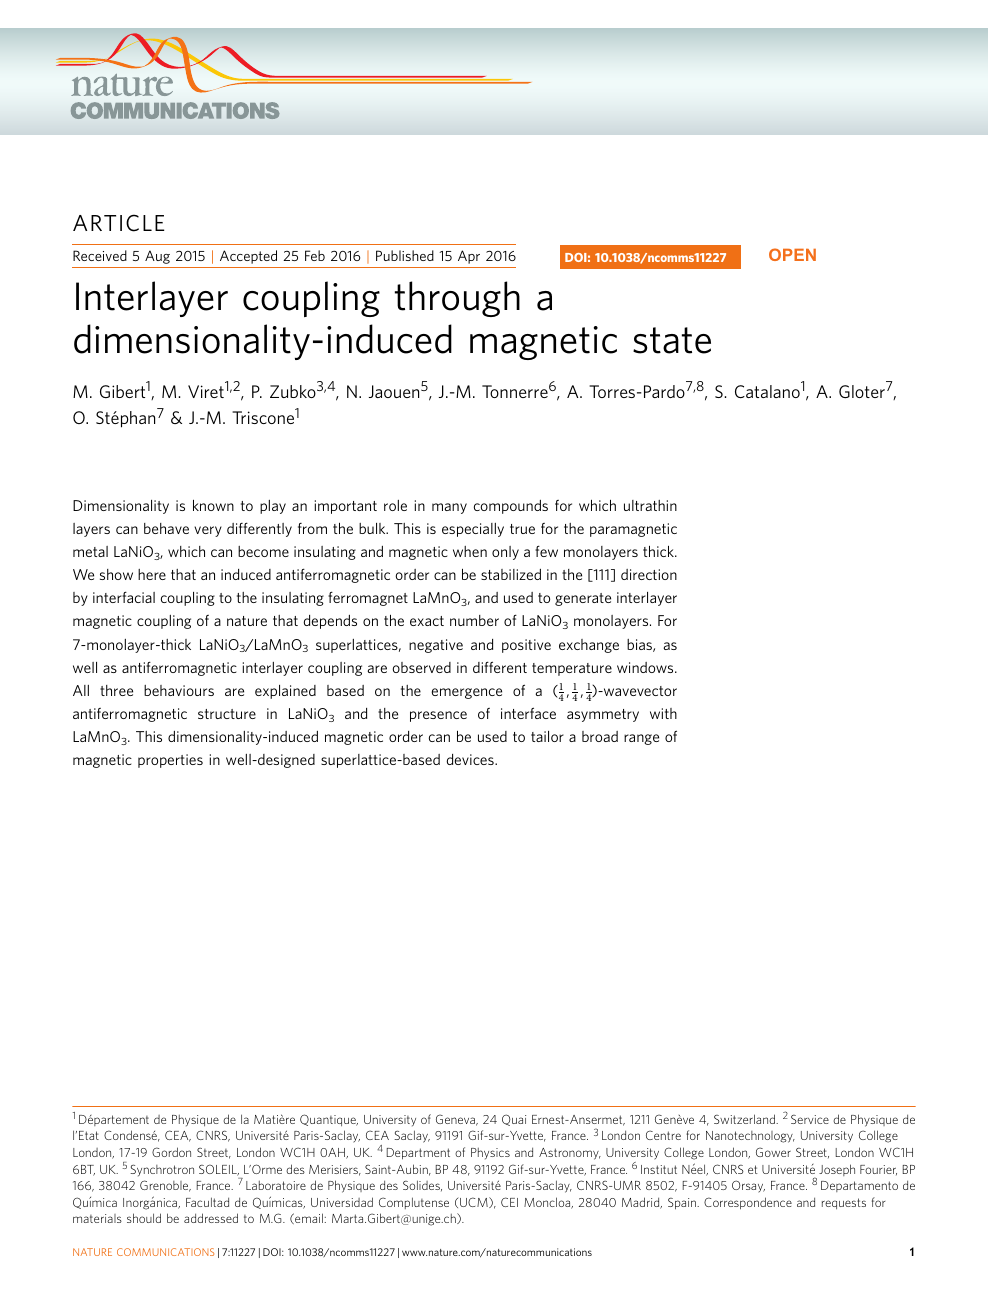 Interlayer coupling through a dimensionality-induced